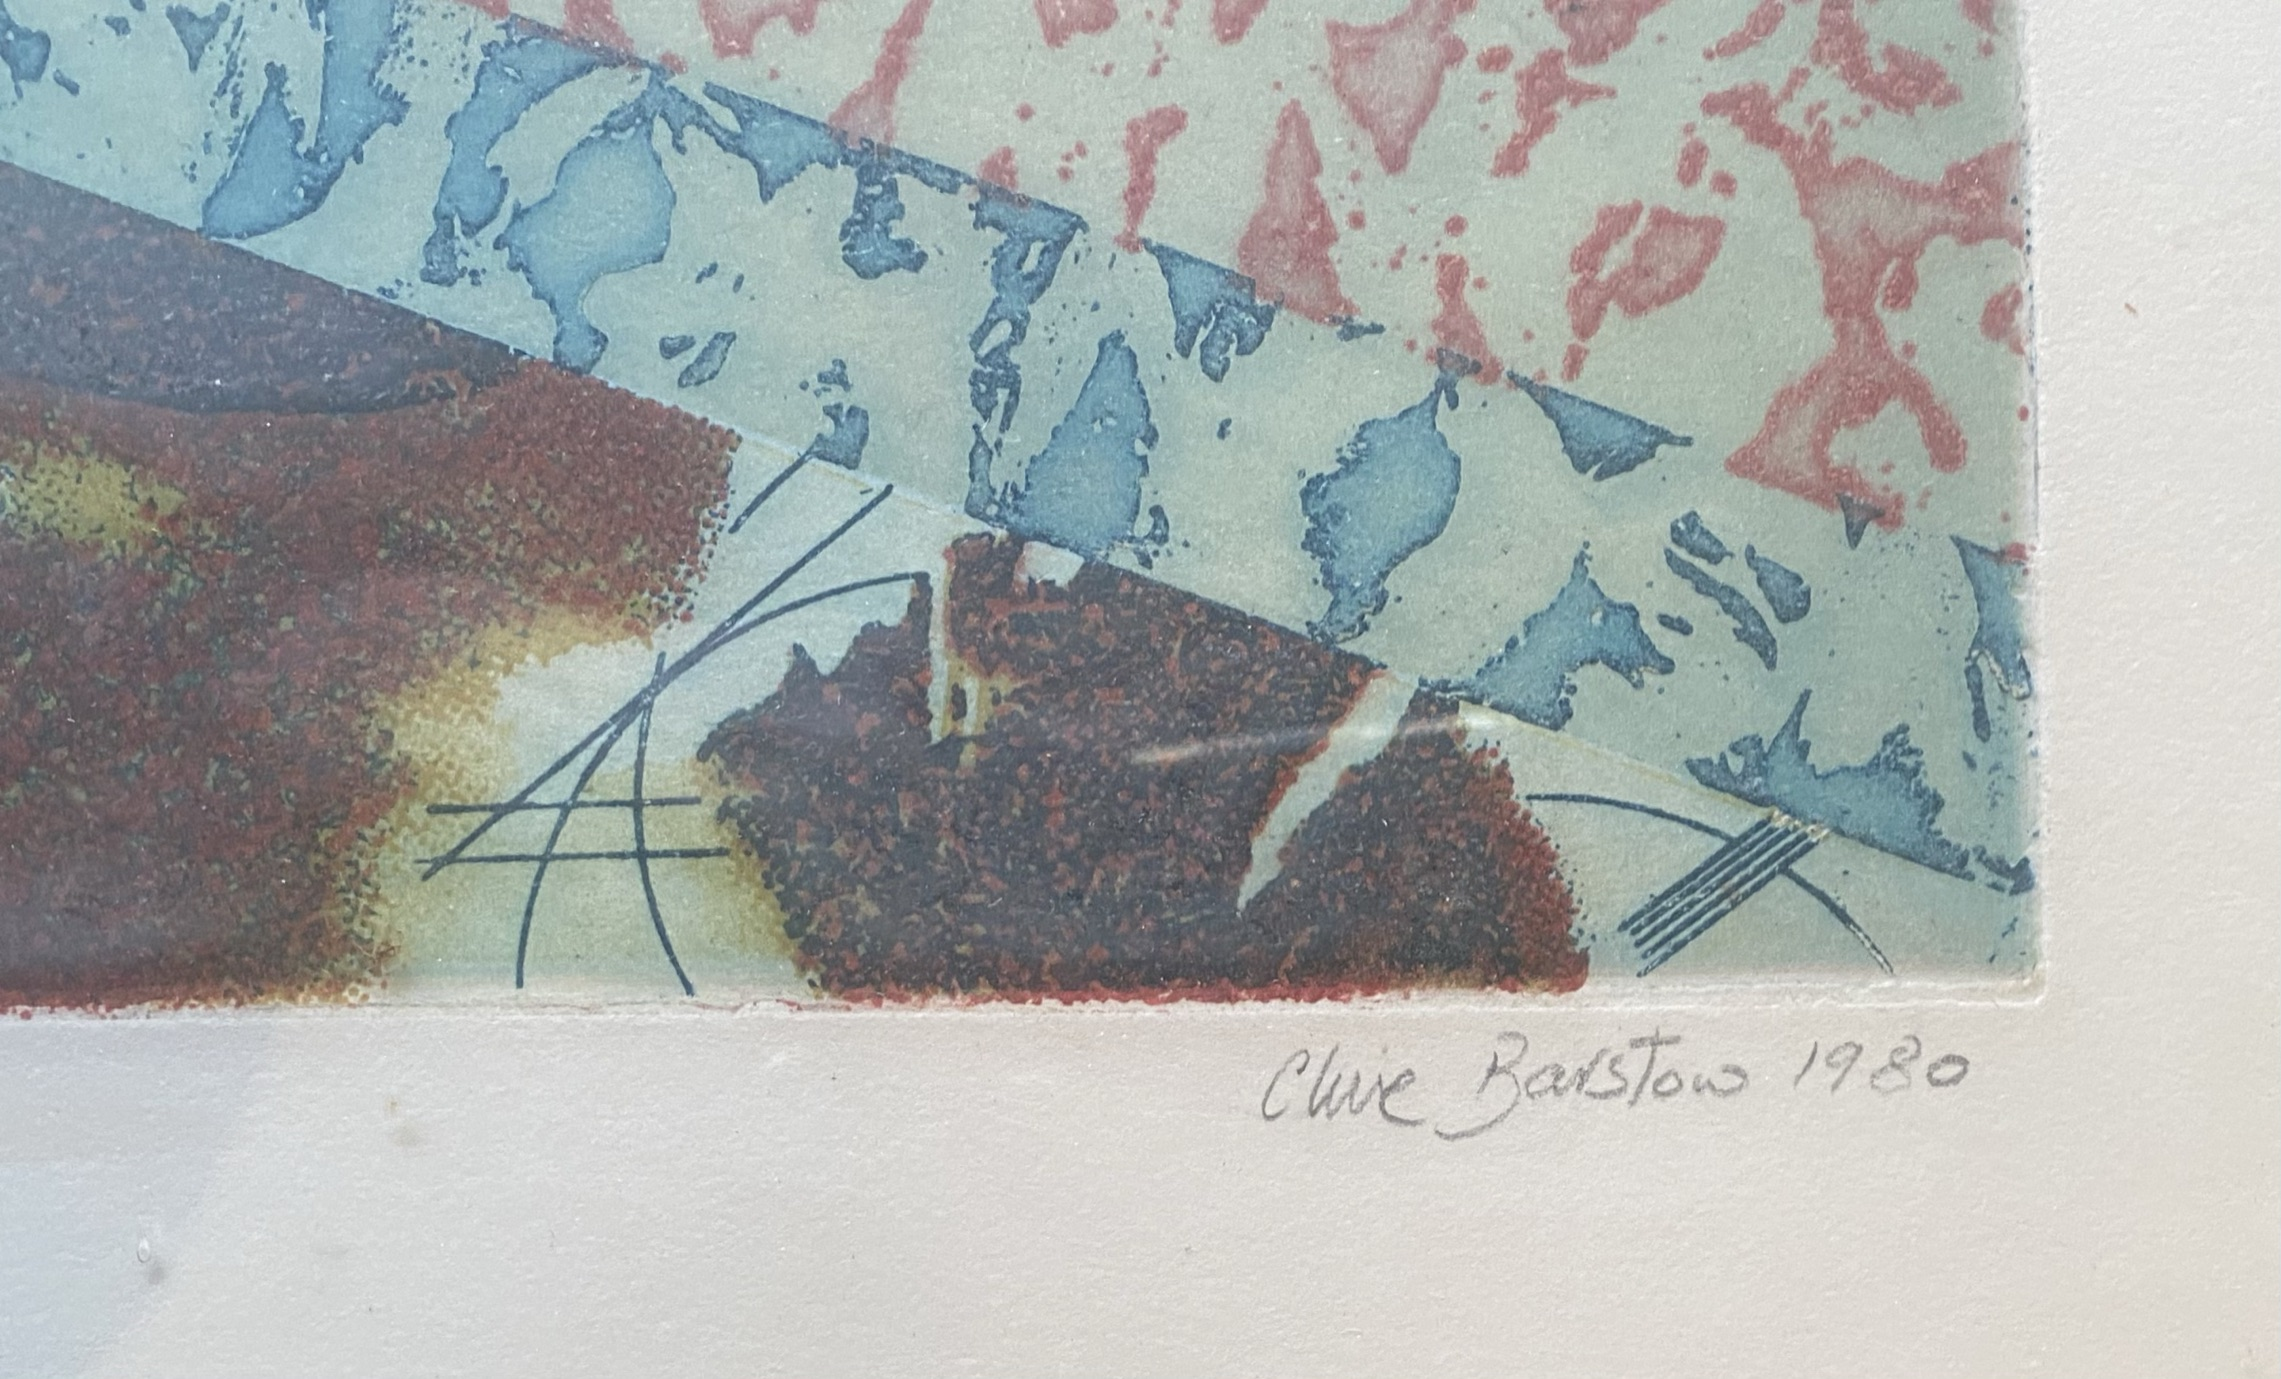 """Clive Bristow """"Rons Ronson"""" artists proof - Image 4 of 5"""